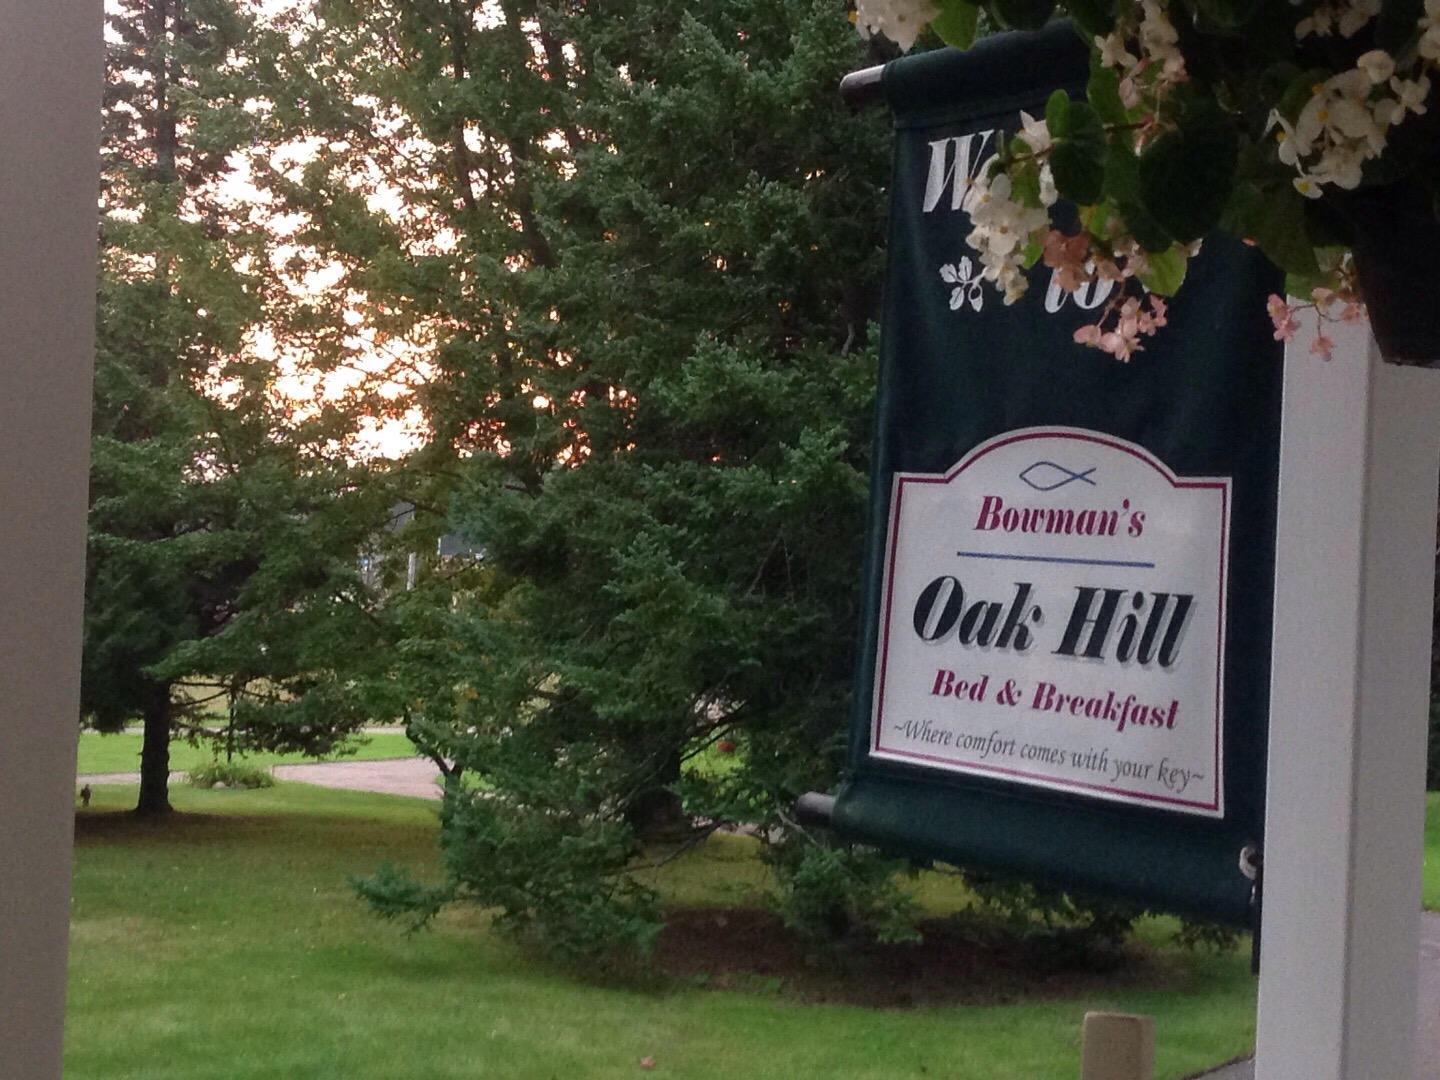 Bowman's Oak Hill Bed and Breakfast image 0